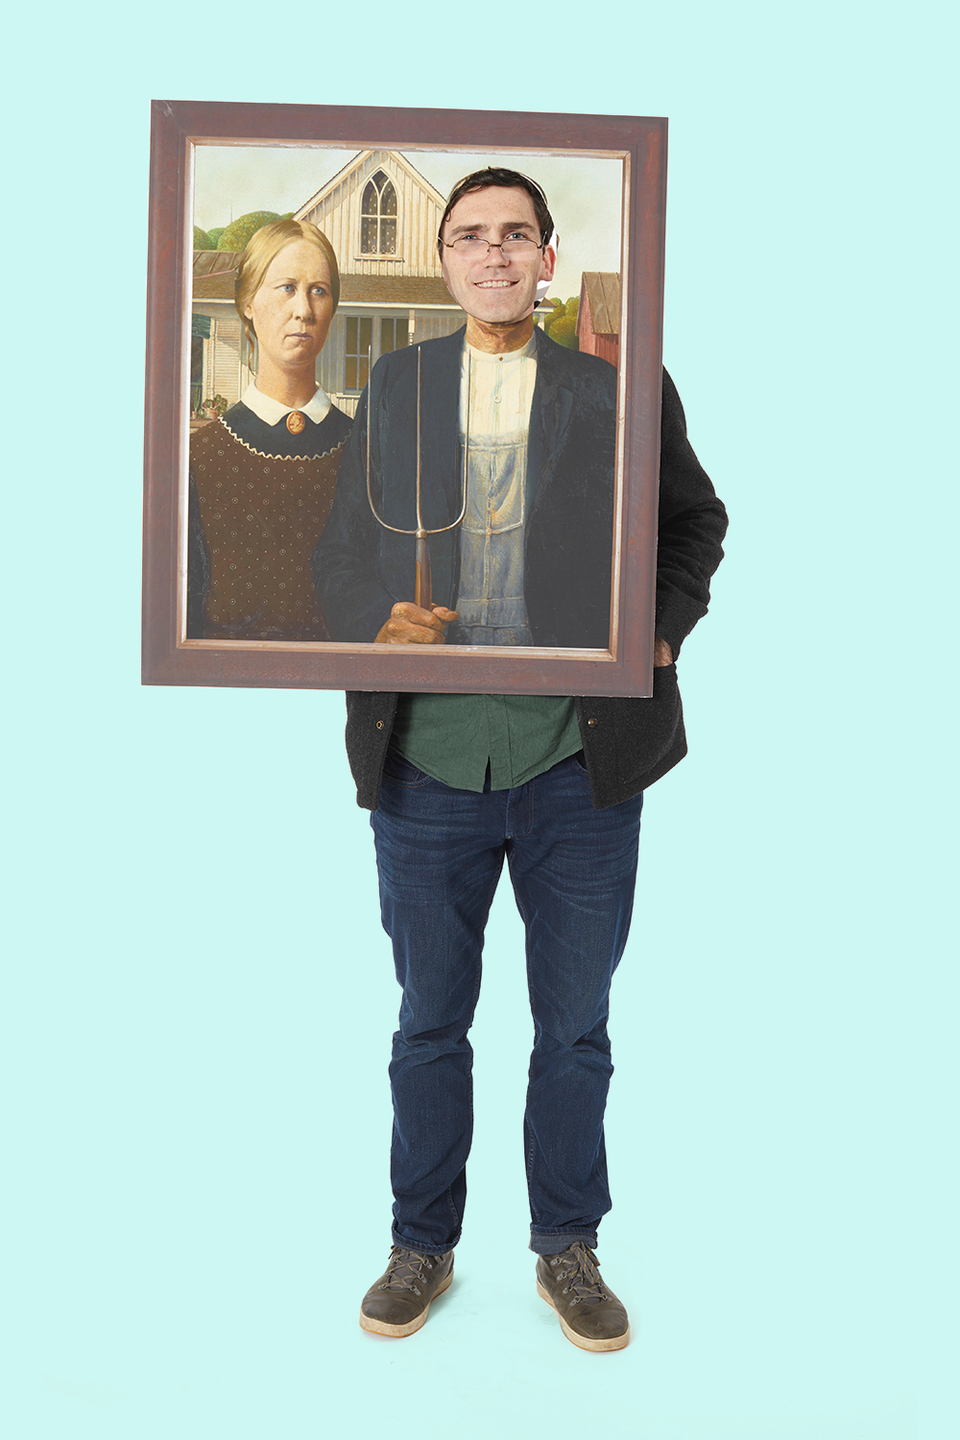 """<p>Get a print-out of Grant Wood's painting and cut a hole in it for your face. It's quick, easy, and a soon-to-be American classic.</p><p><a class=""""link rapid-noclick-resp"""" href=""""https://www.amazon.com/American-Gothic-Expensive-Paintings-Poster/dp/B01N55QSD1/?tag=syn-yahoo-20&ascsubtag=%5Bartid%7C10055.g.2750%5Bsrc%7Cyahoo-us"""" rel=""""nofollow noopener"""" target=""""_blank"""" data-ylk=""""slk:SHOP POSTERS"""">SHOP POSTERS</a><br></p>"""